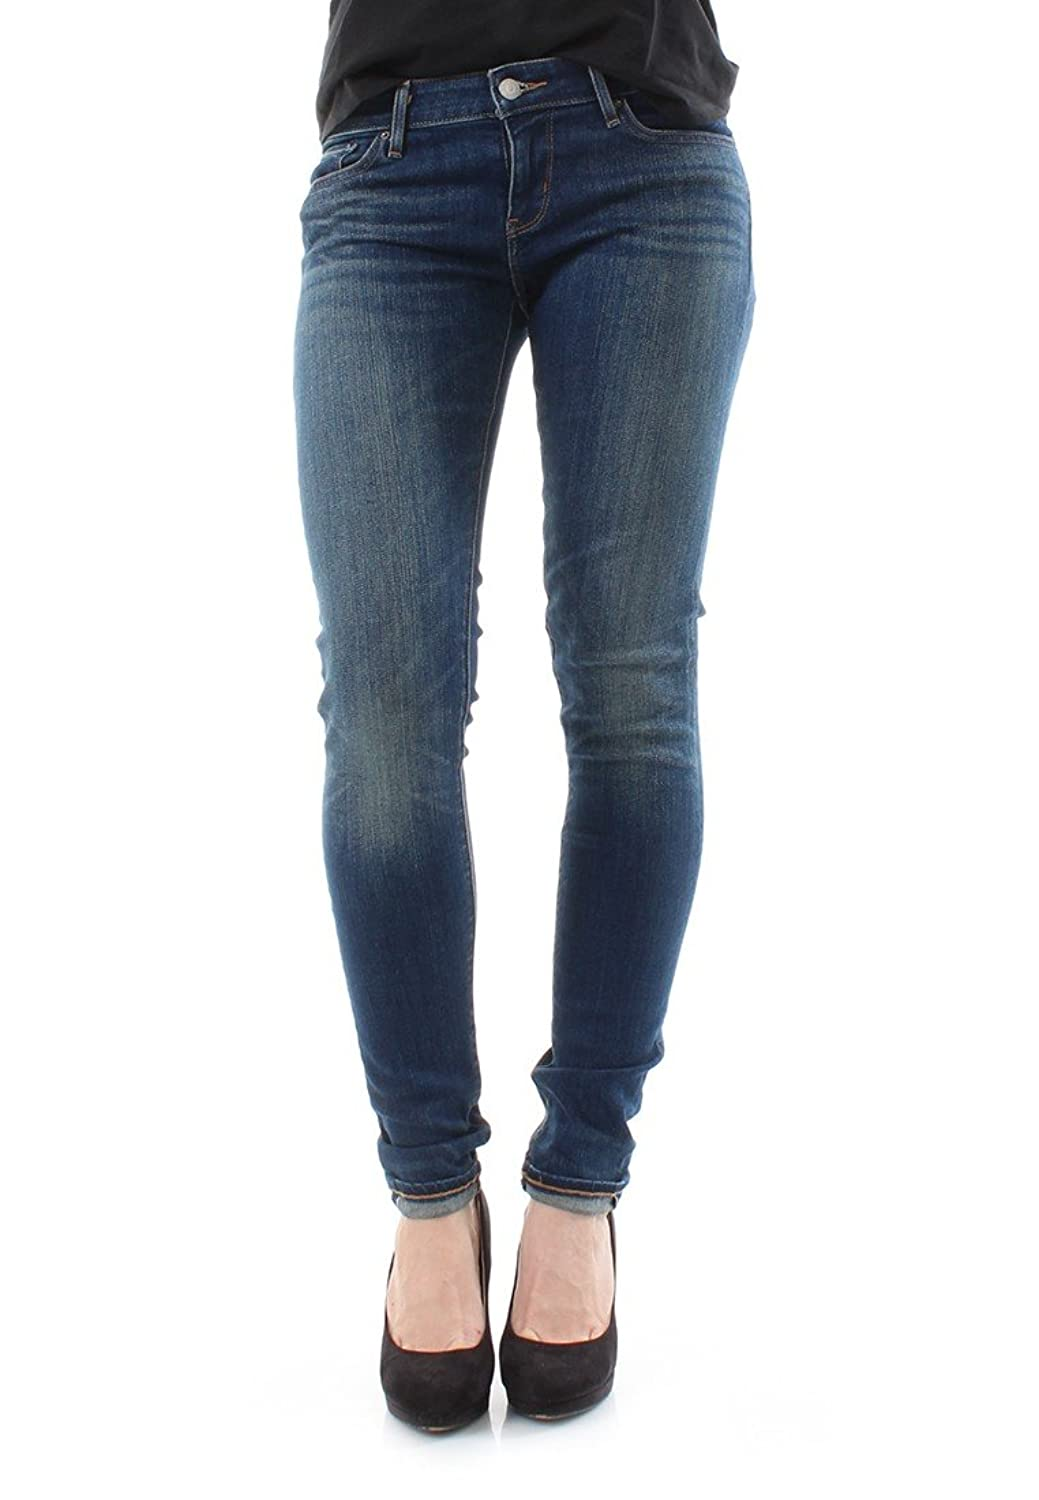 Levis Jeans Women 711 SELVEDGE SKINNY 22848-0003 Resurrection